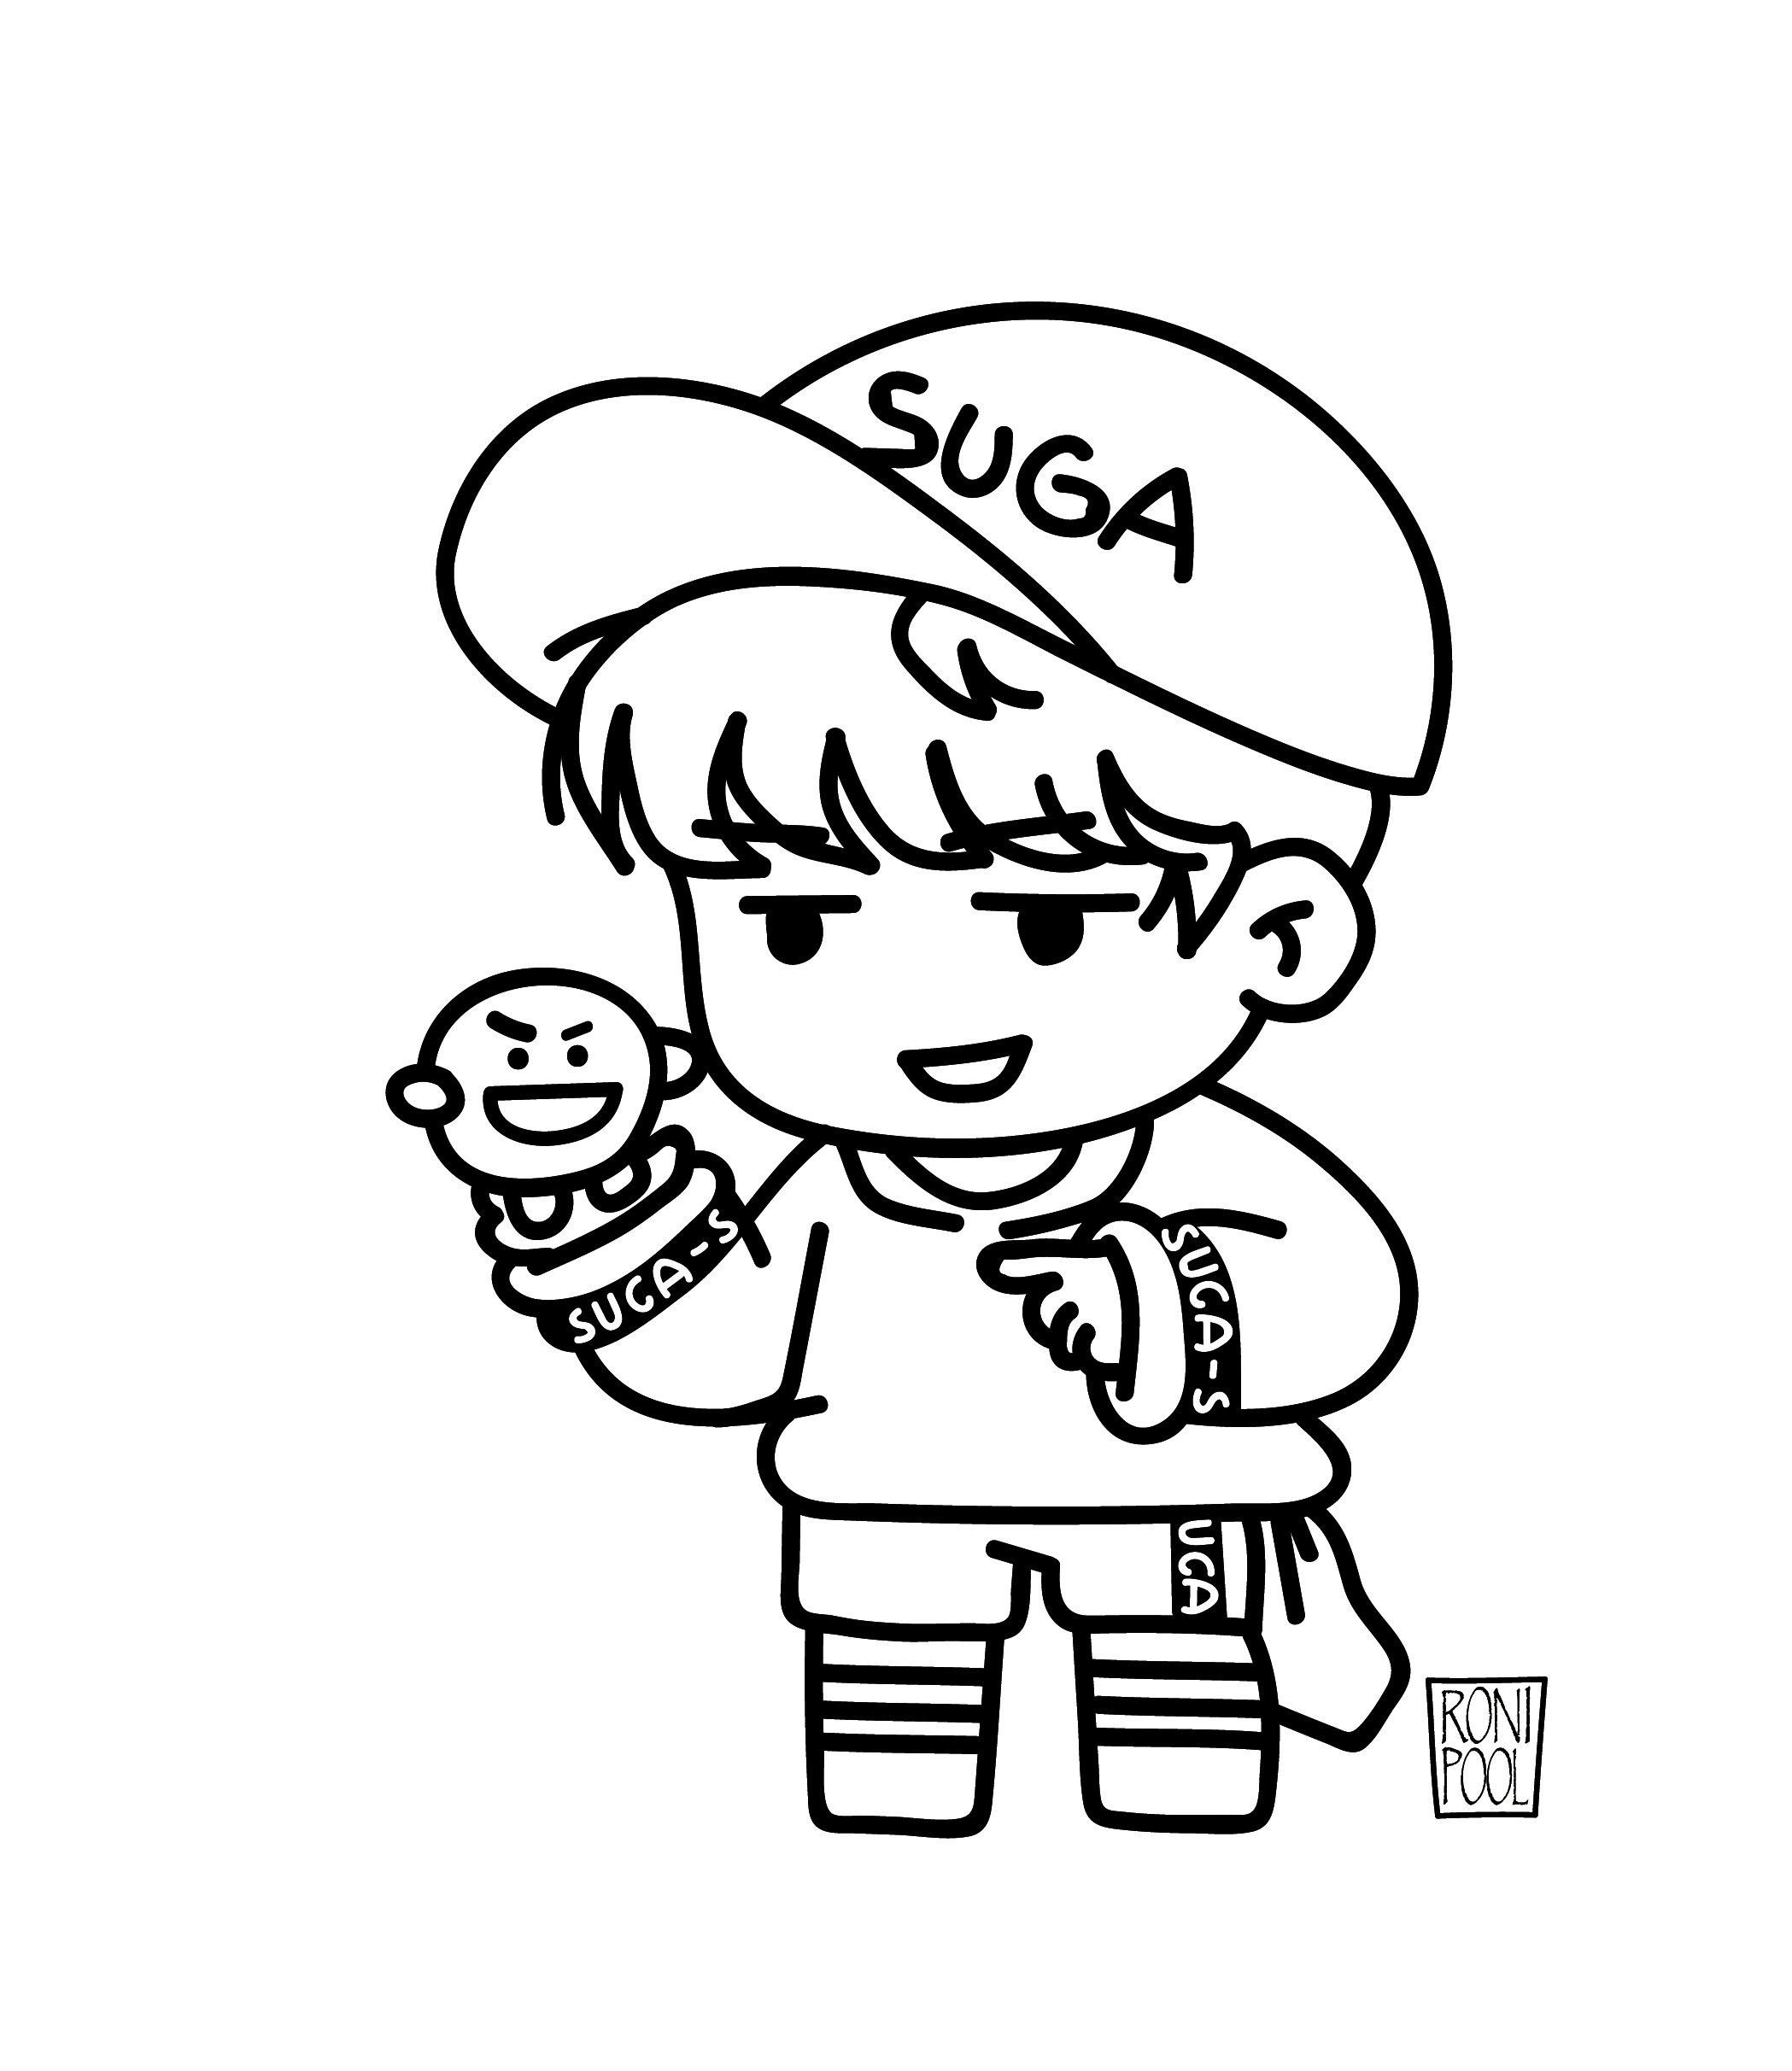 Bts Fanart Bt21 Suga Yoongi And Scooky Chibi Speed Drawing Roni Pool Bts Fanart Bts Drawings Chibi Coloring Pages